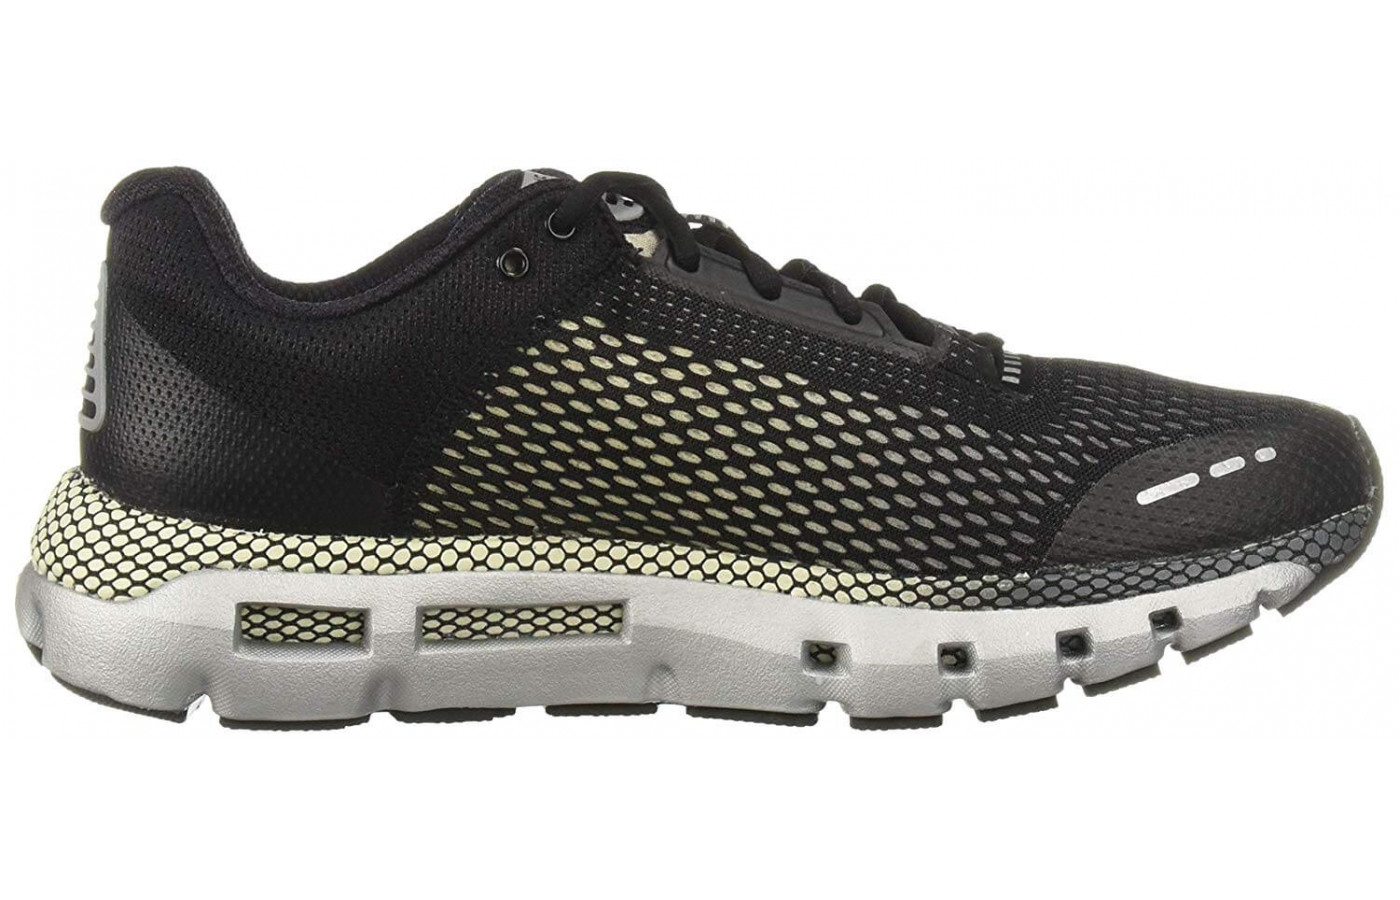 Under Armour Men's HOVR Infinite side view